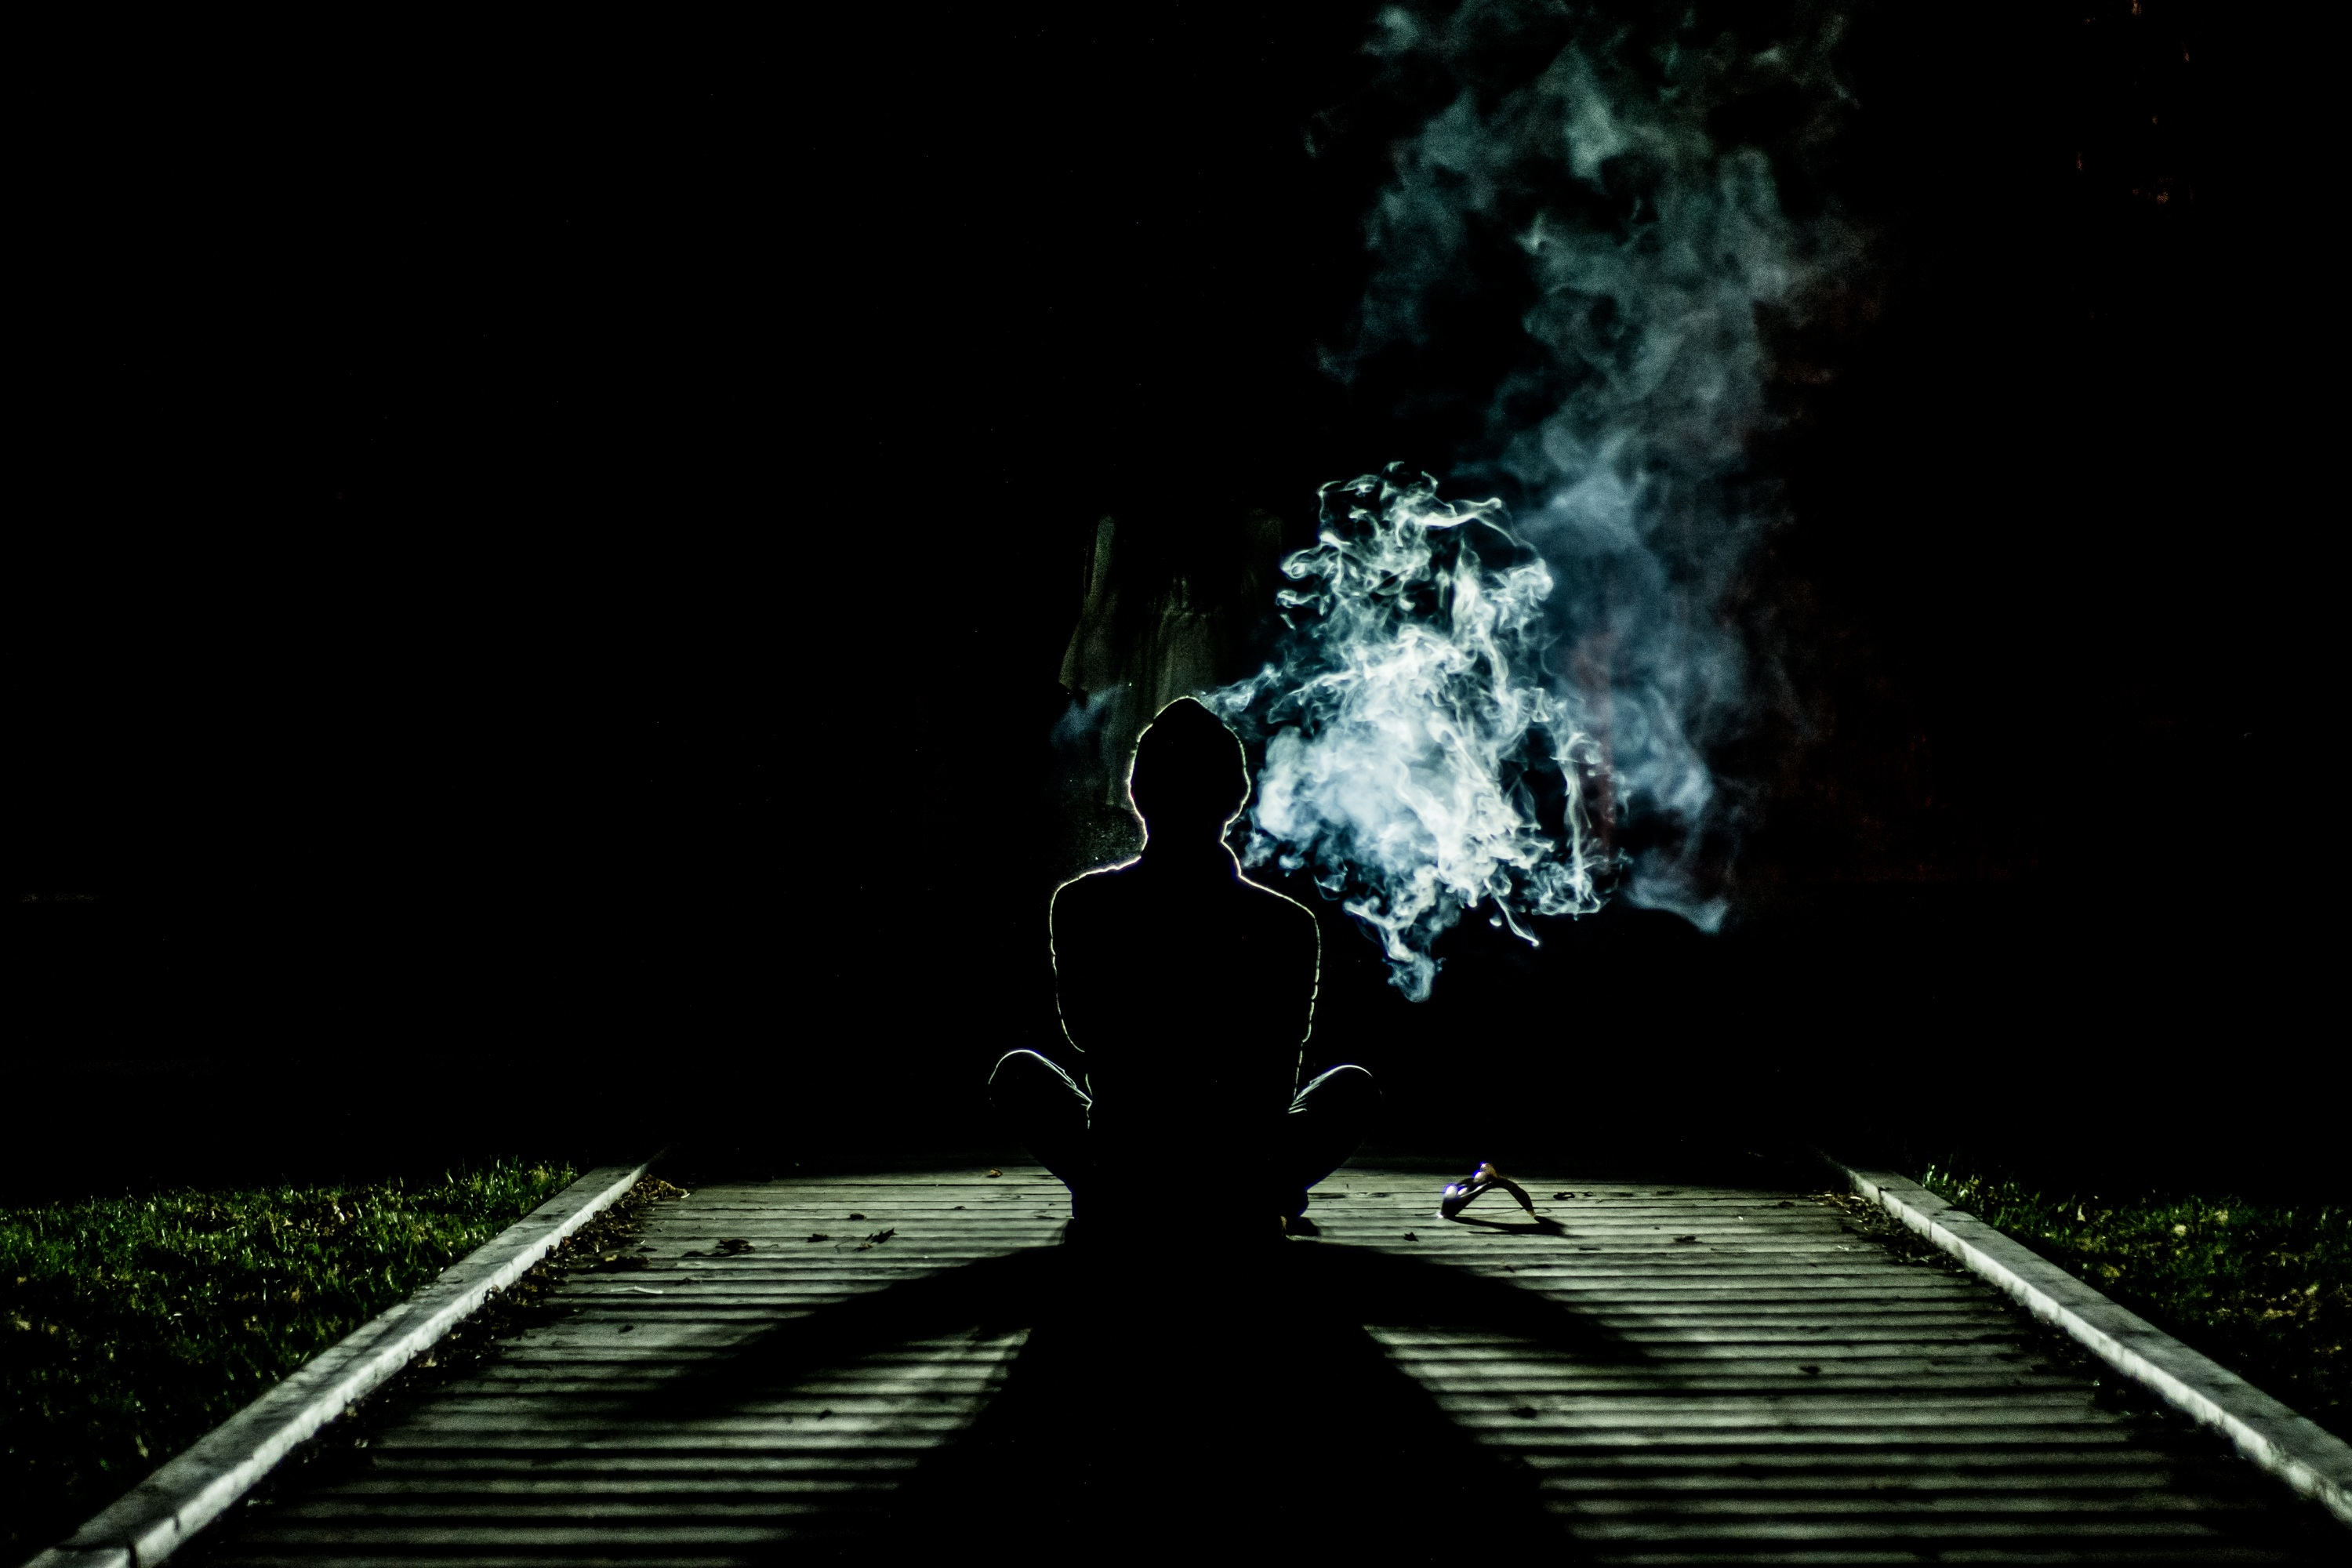 Man sits and meditates in the night